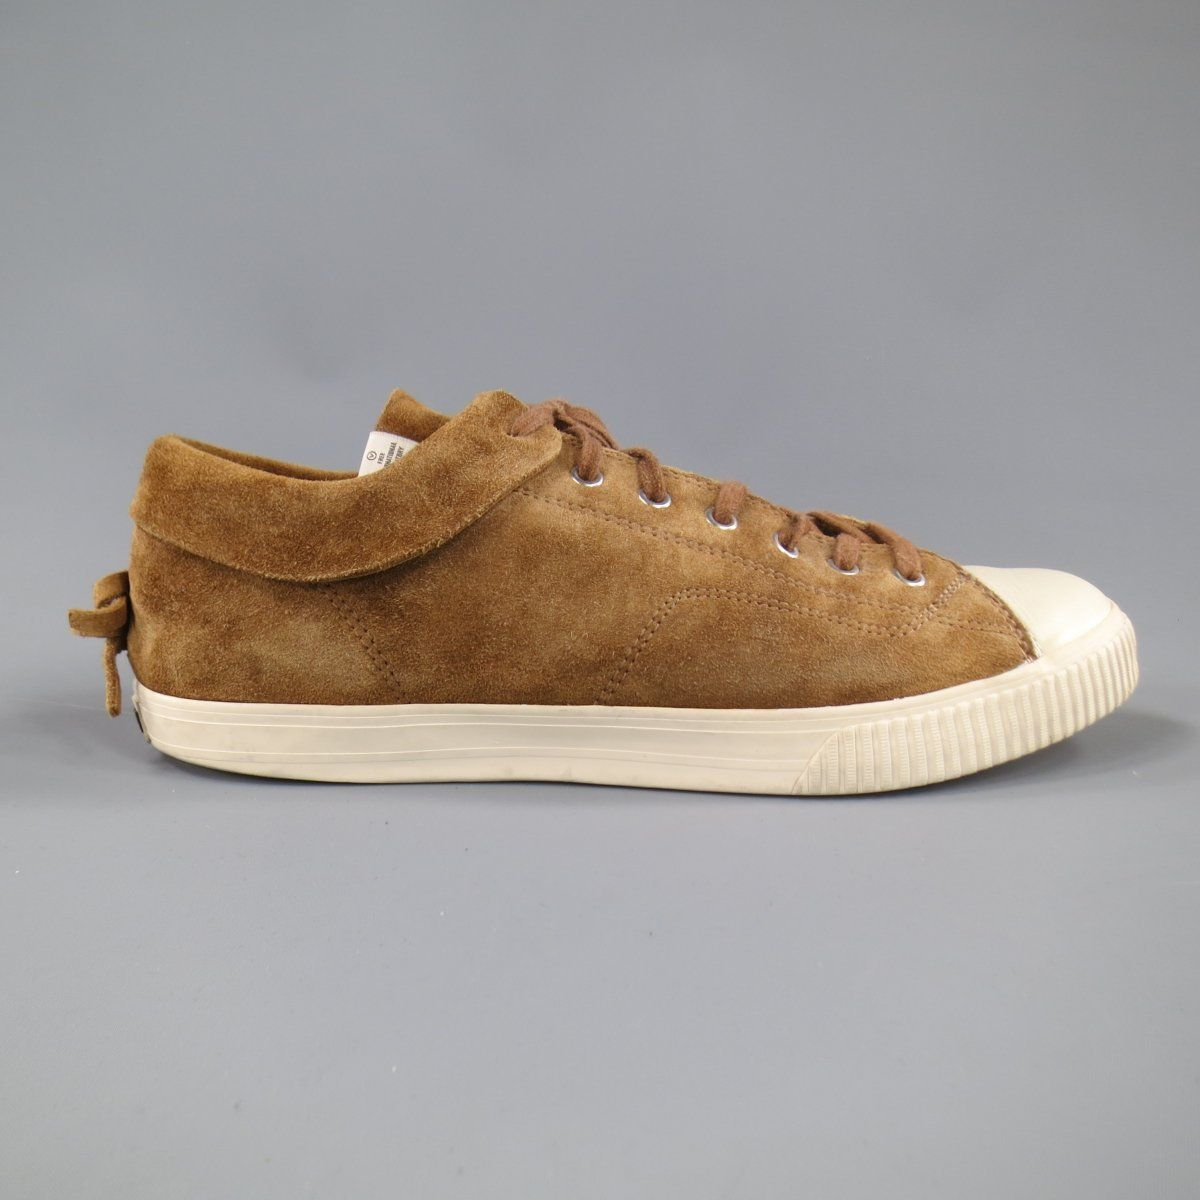 new styles ac060 34f45 ... VISVIM Size 11 Light Brown Suede Gabo Lo Kudo Sneakers ...